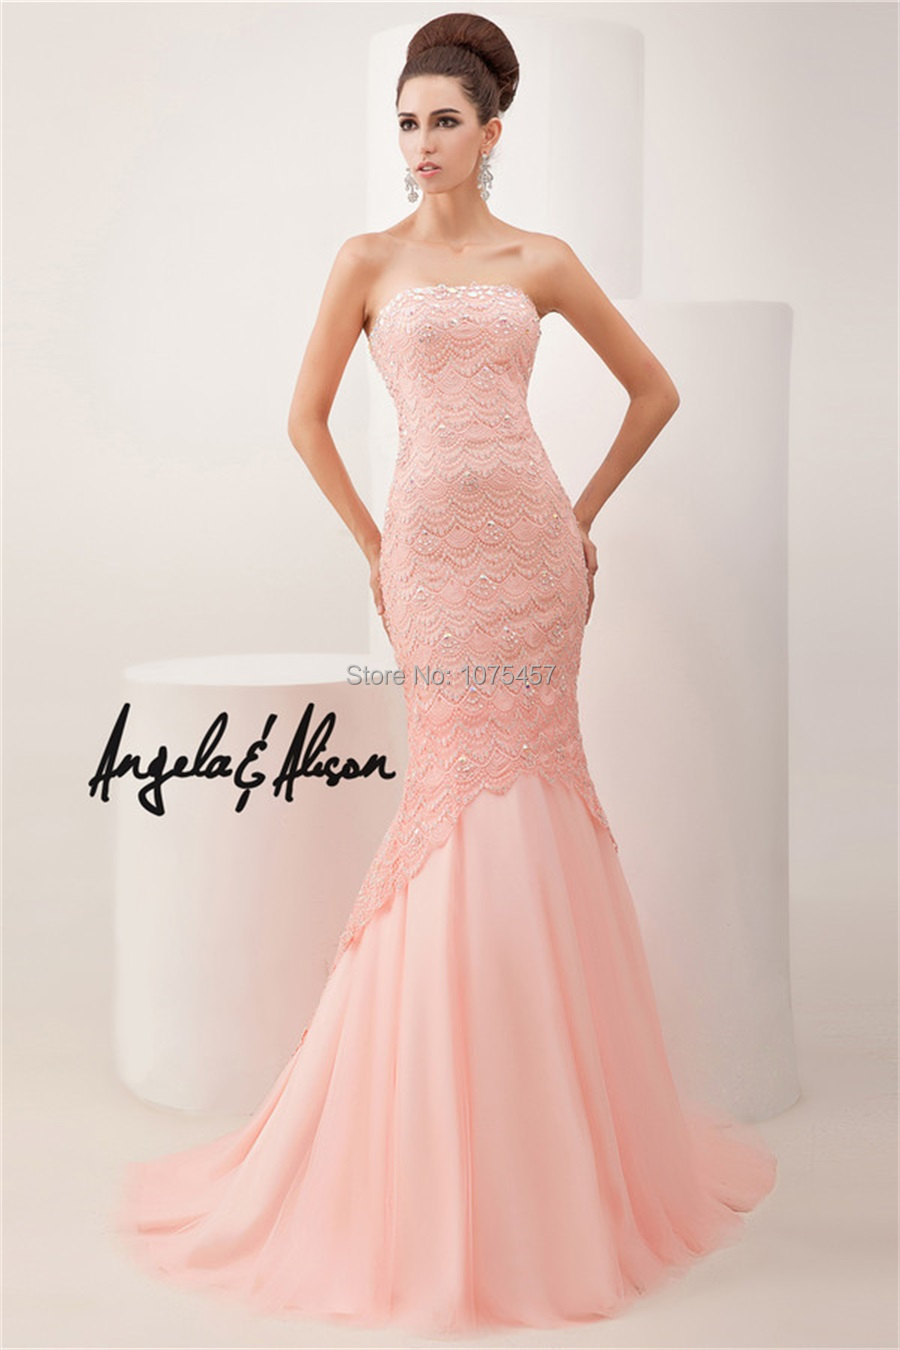 Free Shipping Mermaid Prom Dresses With Lace Crystals 2014